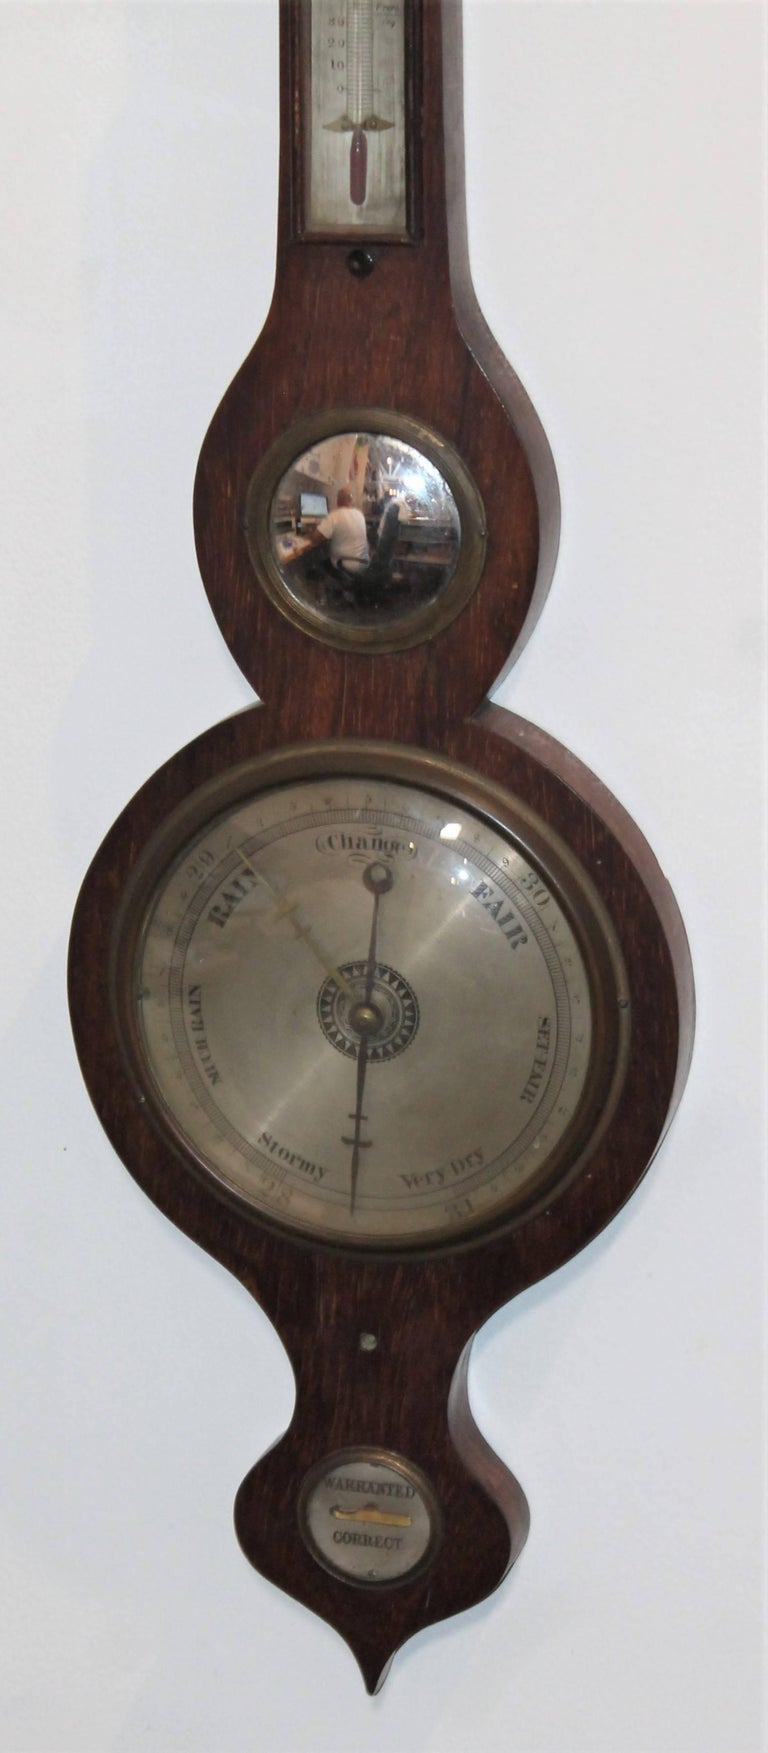 Wheel or banjo barometer. Original mercury glass mirror. All original, small glass shell is missing from the top.